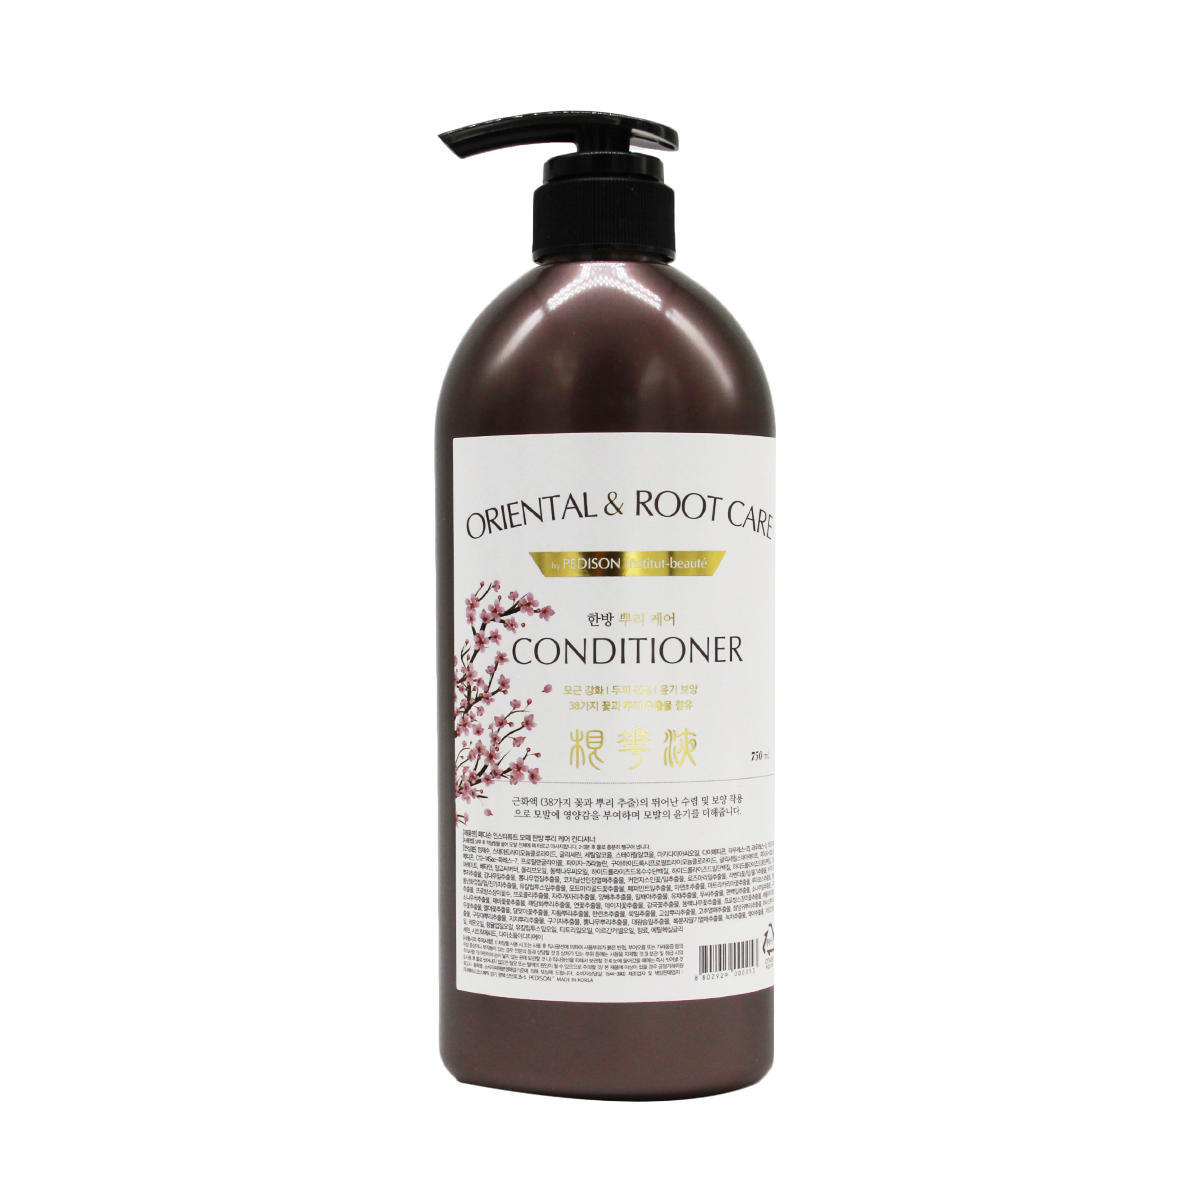 Уход за волосами Кондиционер для волос Травы Institut-beaute Oriental Root Care Conditioner, 750 мл import_files_0b_0b888bb35cba11e980fb3408042974b1_f597a86b5ecf11e980fc3408042974b1.jpg